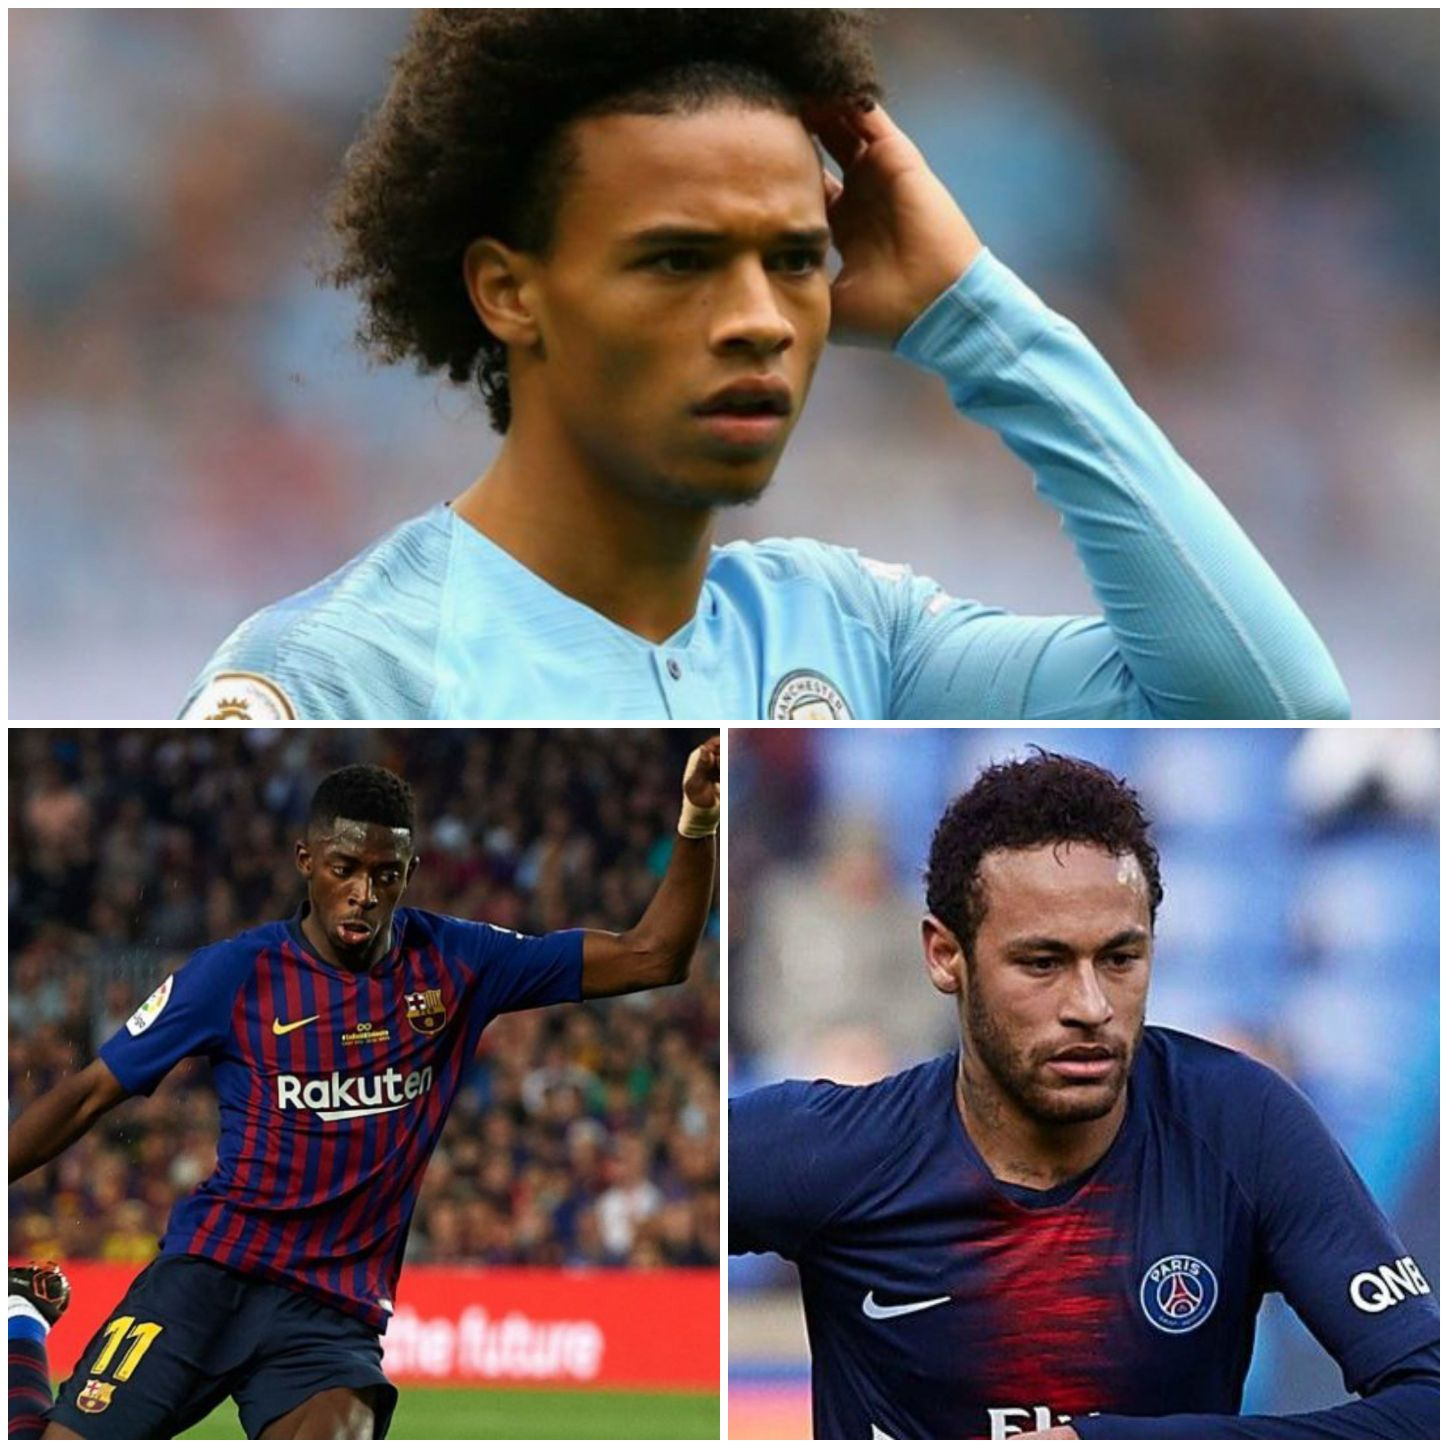 Barcelone want Manchester City to sign their £94m forward to make room for Neymar